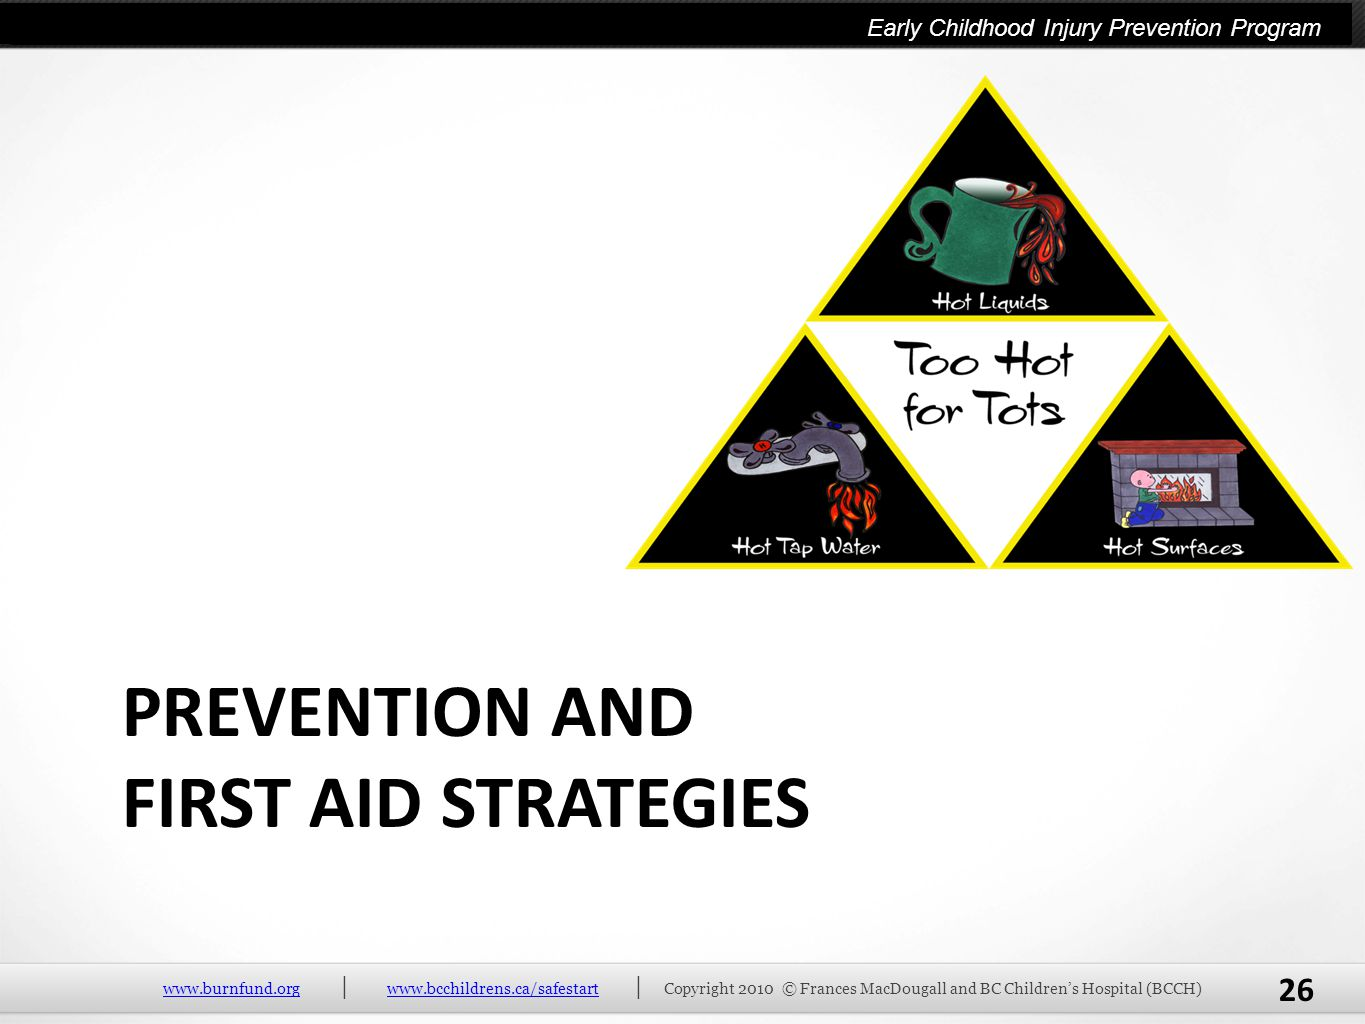 Prevention and First aid strategies